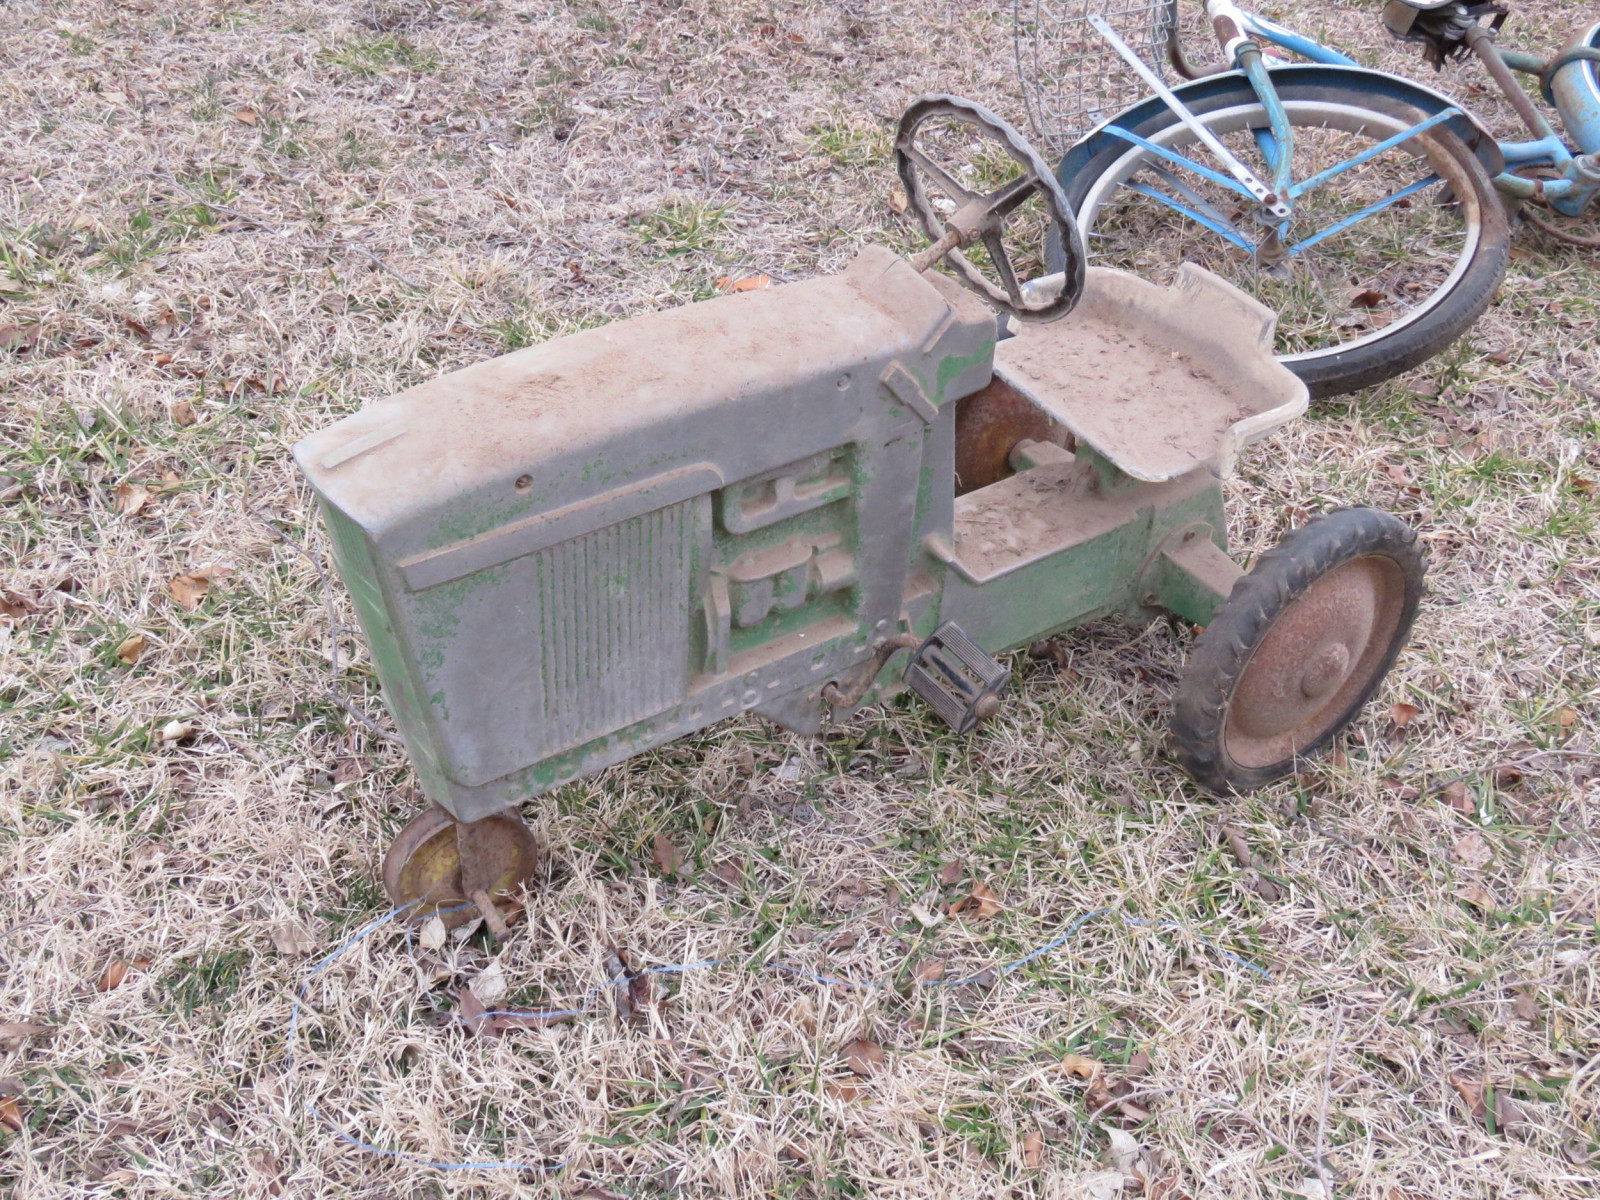 John Deere Model A Pedal Tractor - Image 1